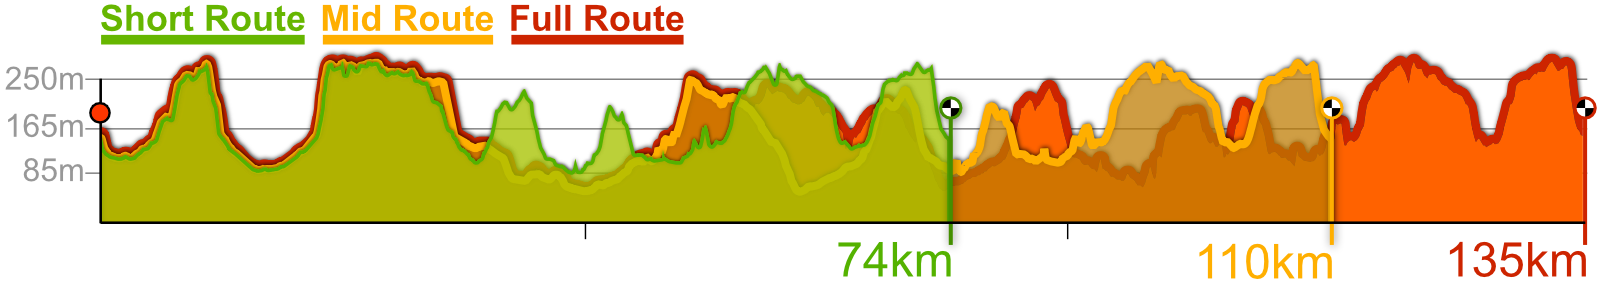 St Georges sportive route profiles